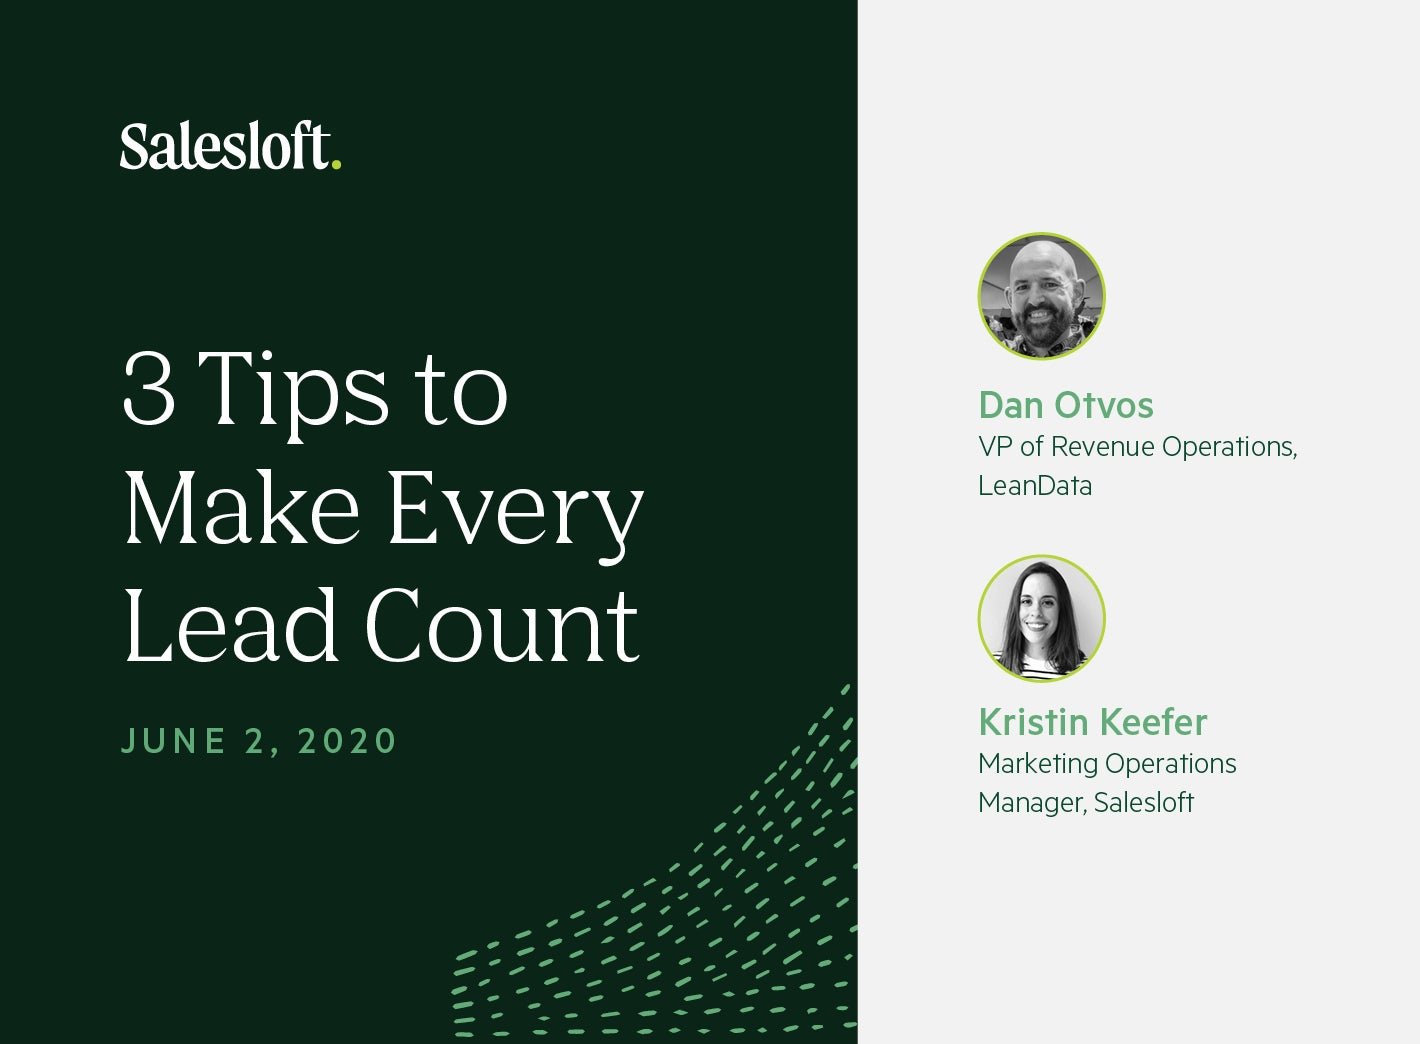 3 Tips to Make Every Lead Count